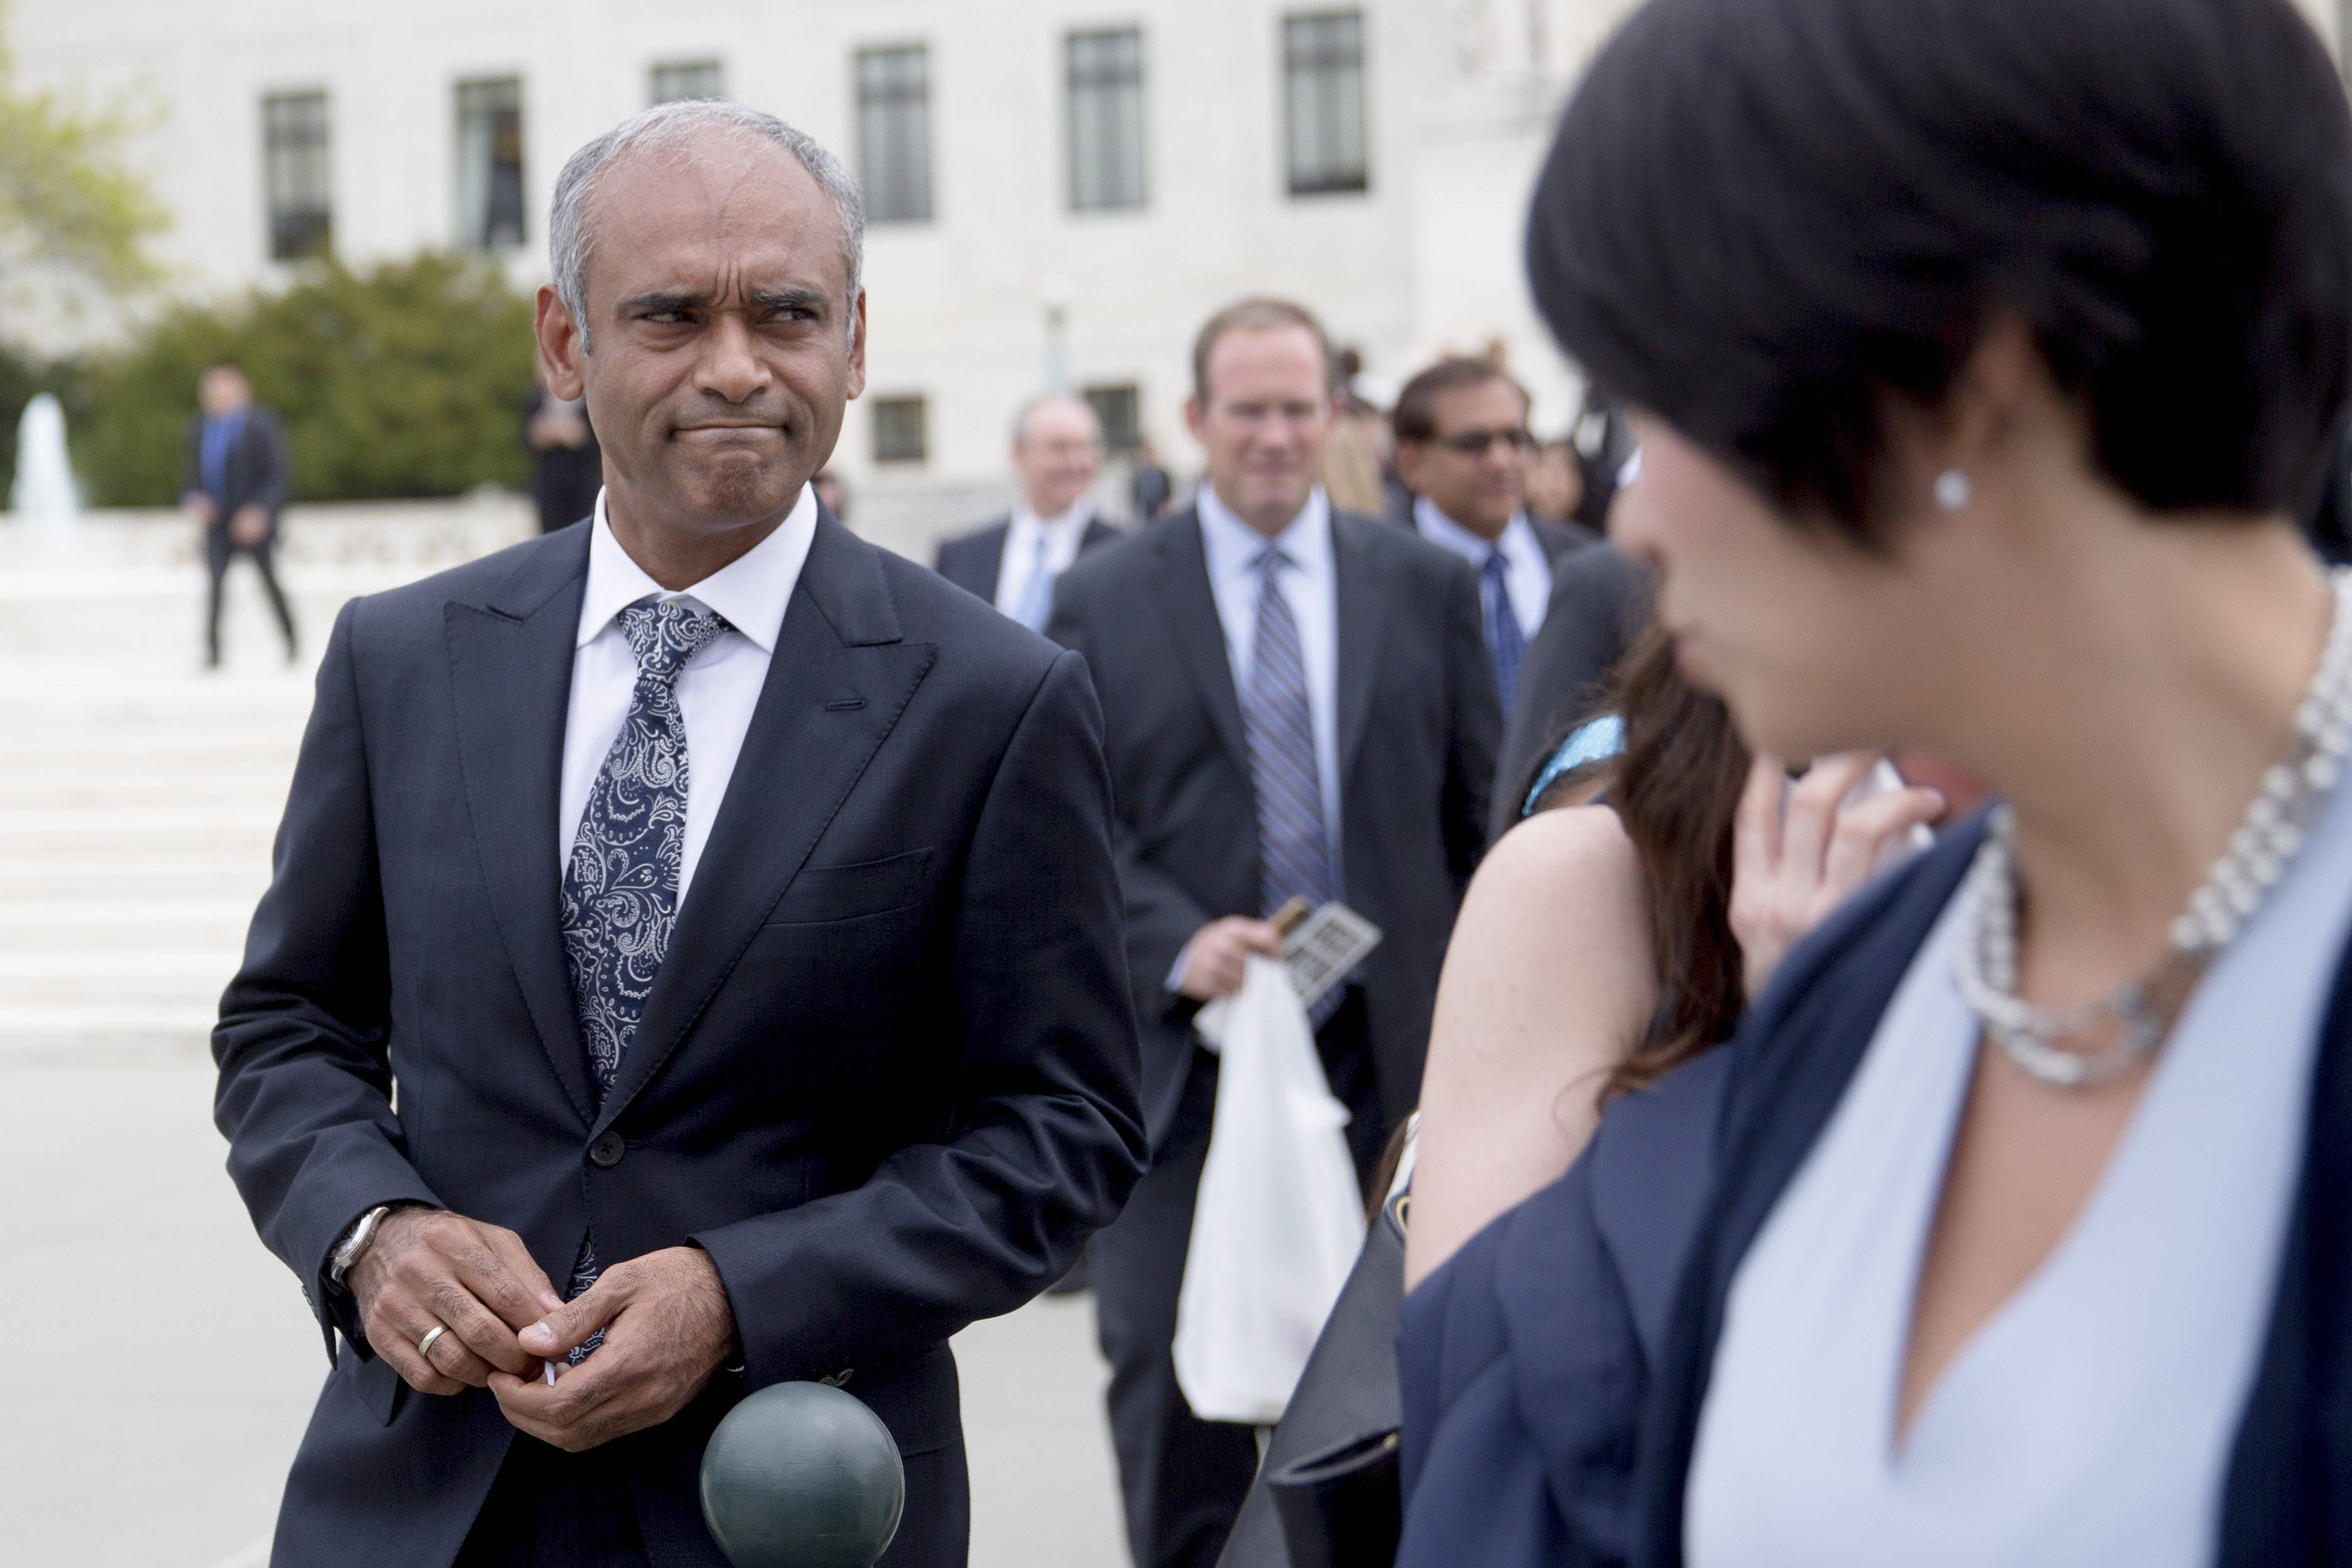 Chet Kanojia, chief executive officer of Aereo Inc., left, leaves the U.S. Supreme Court following oral arguments by Aereo Inc. and American Broadcasting Companies Inc. in Washington Tuesday. Justices questioned the legality of Aereo, the Barry Diller-backed startup aiming to upend the broadcast industry's decades-old business model by selling live television programming over the Internet.